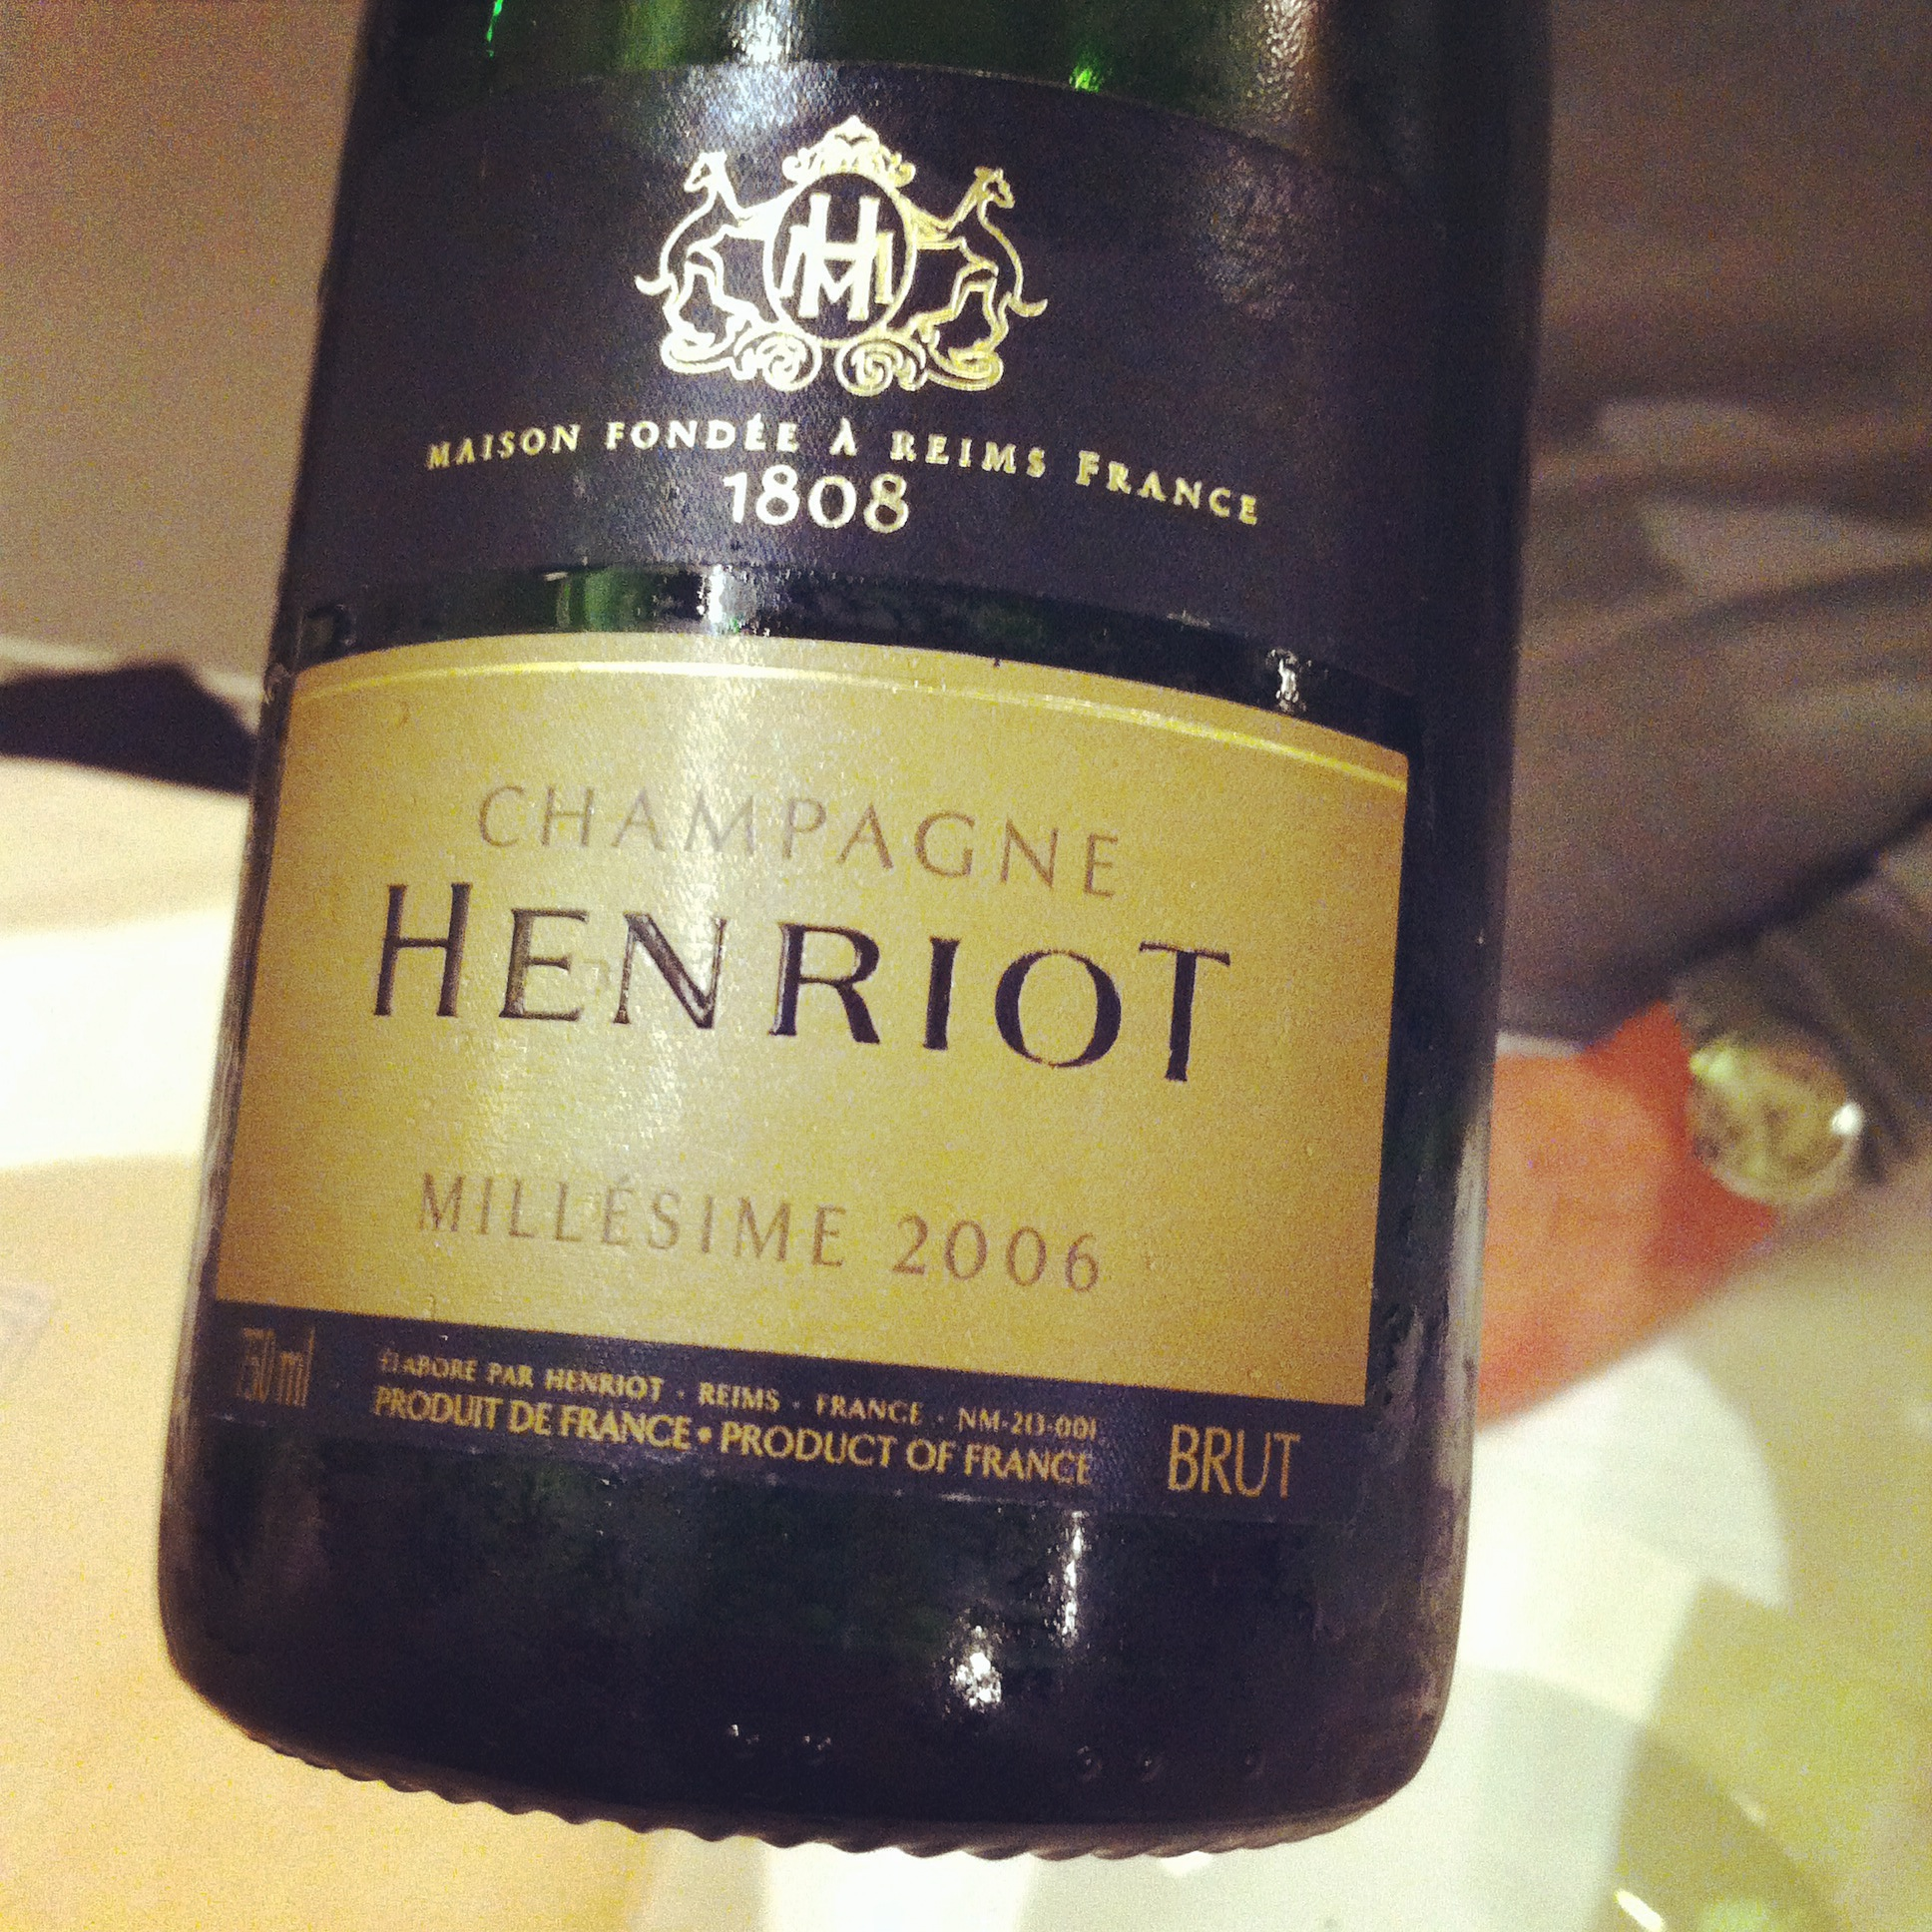 Champagne henriot millesime